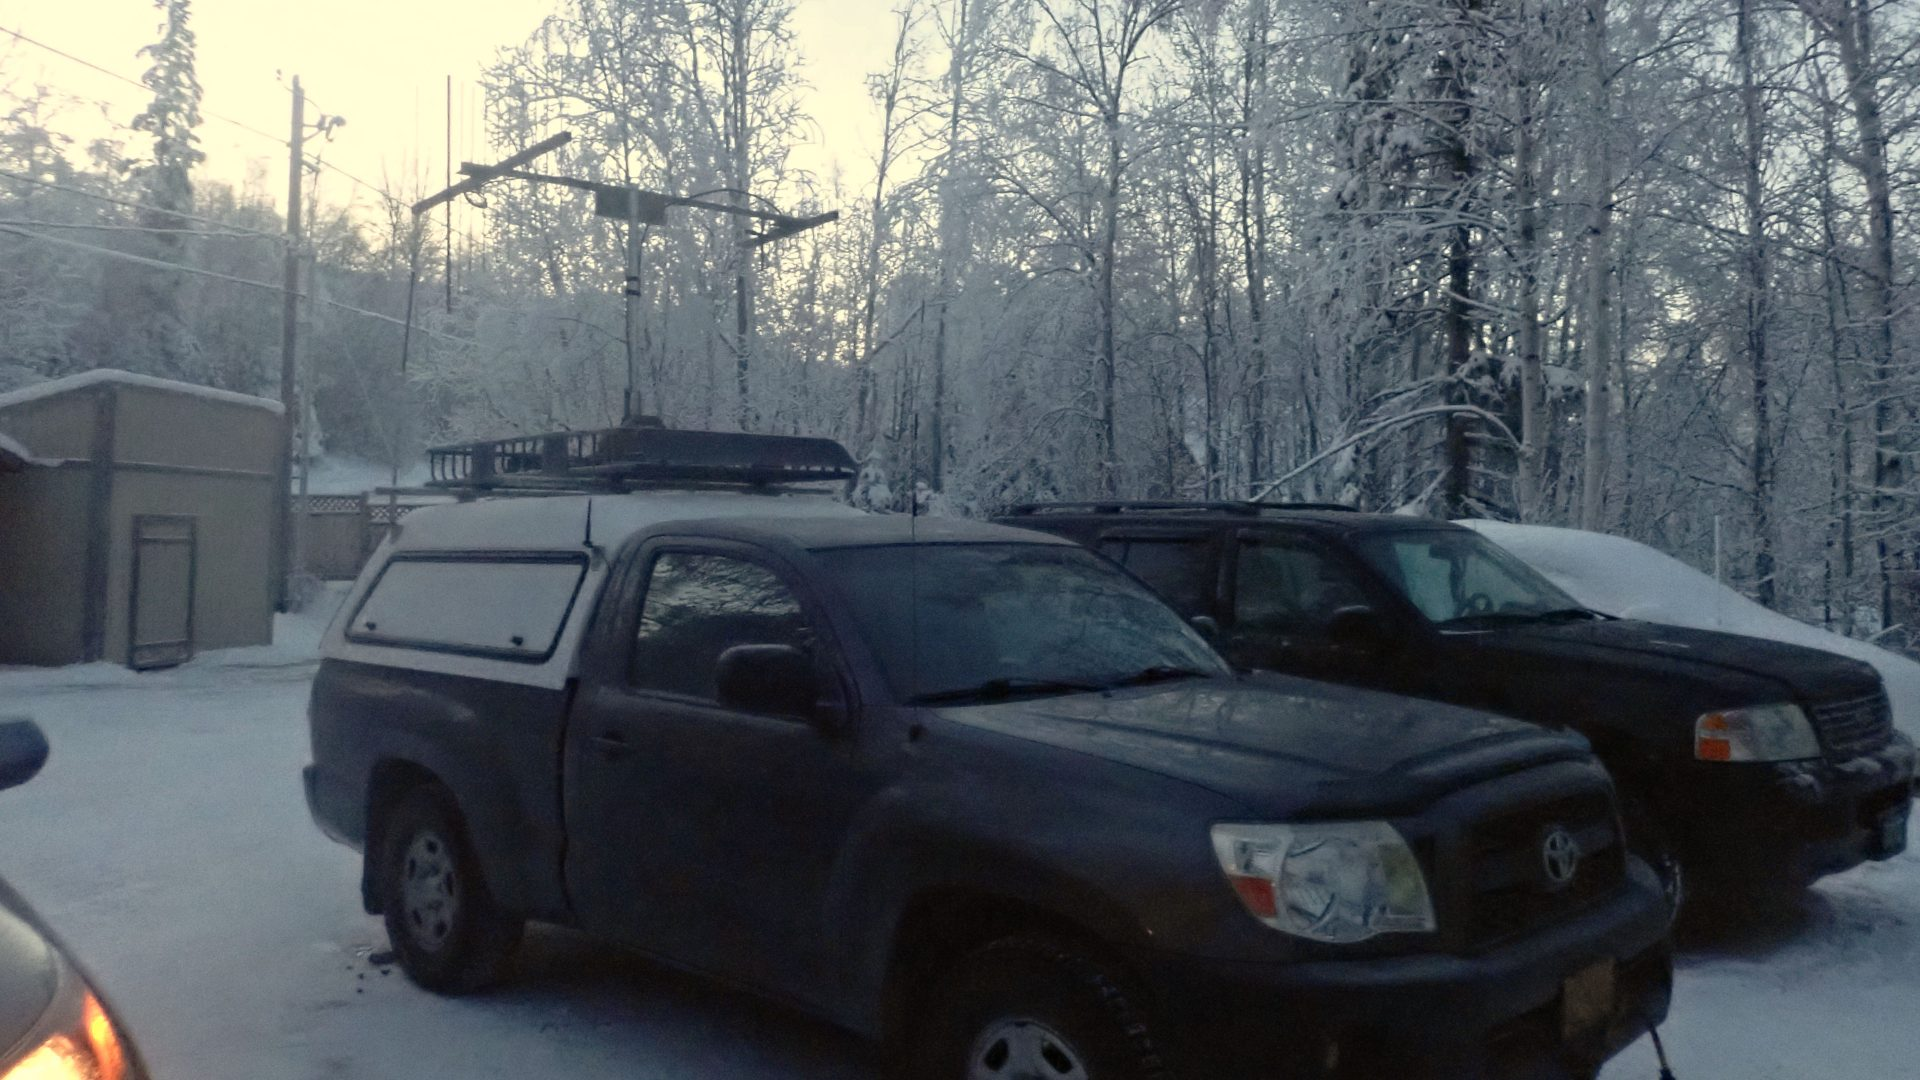 Toyota Tacoma with rover antennas for a VHF contest